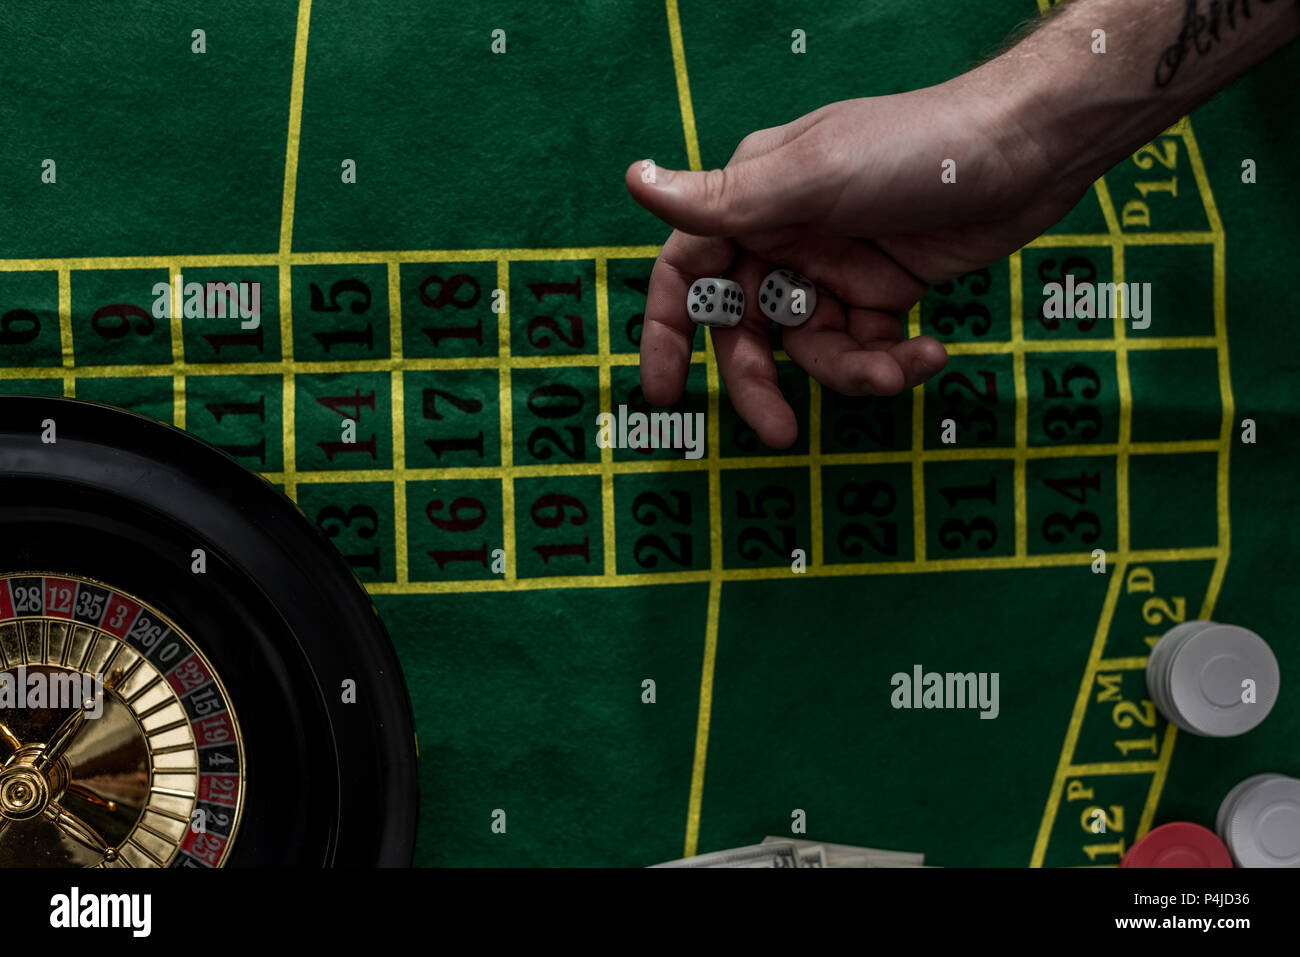 How To Quit Roulette and Beat Gambling Addiction